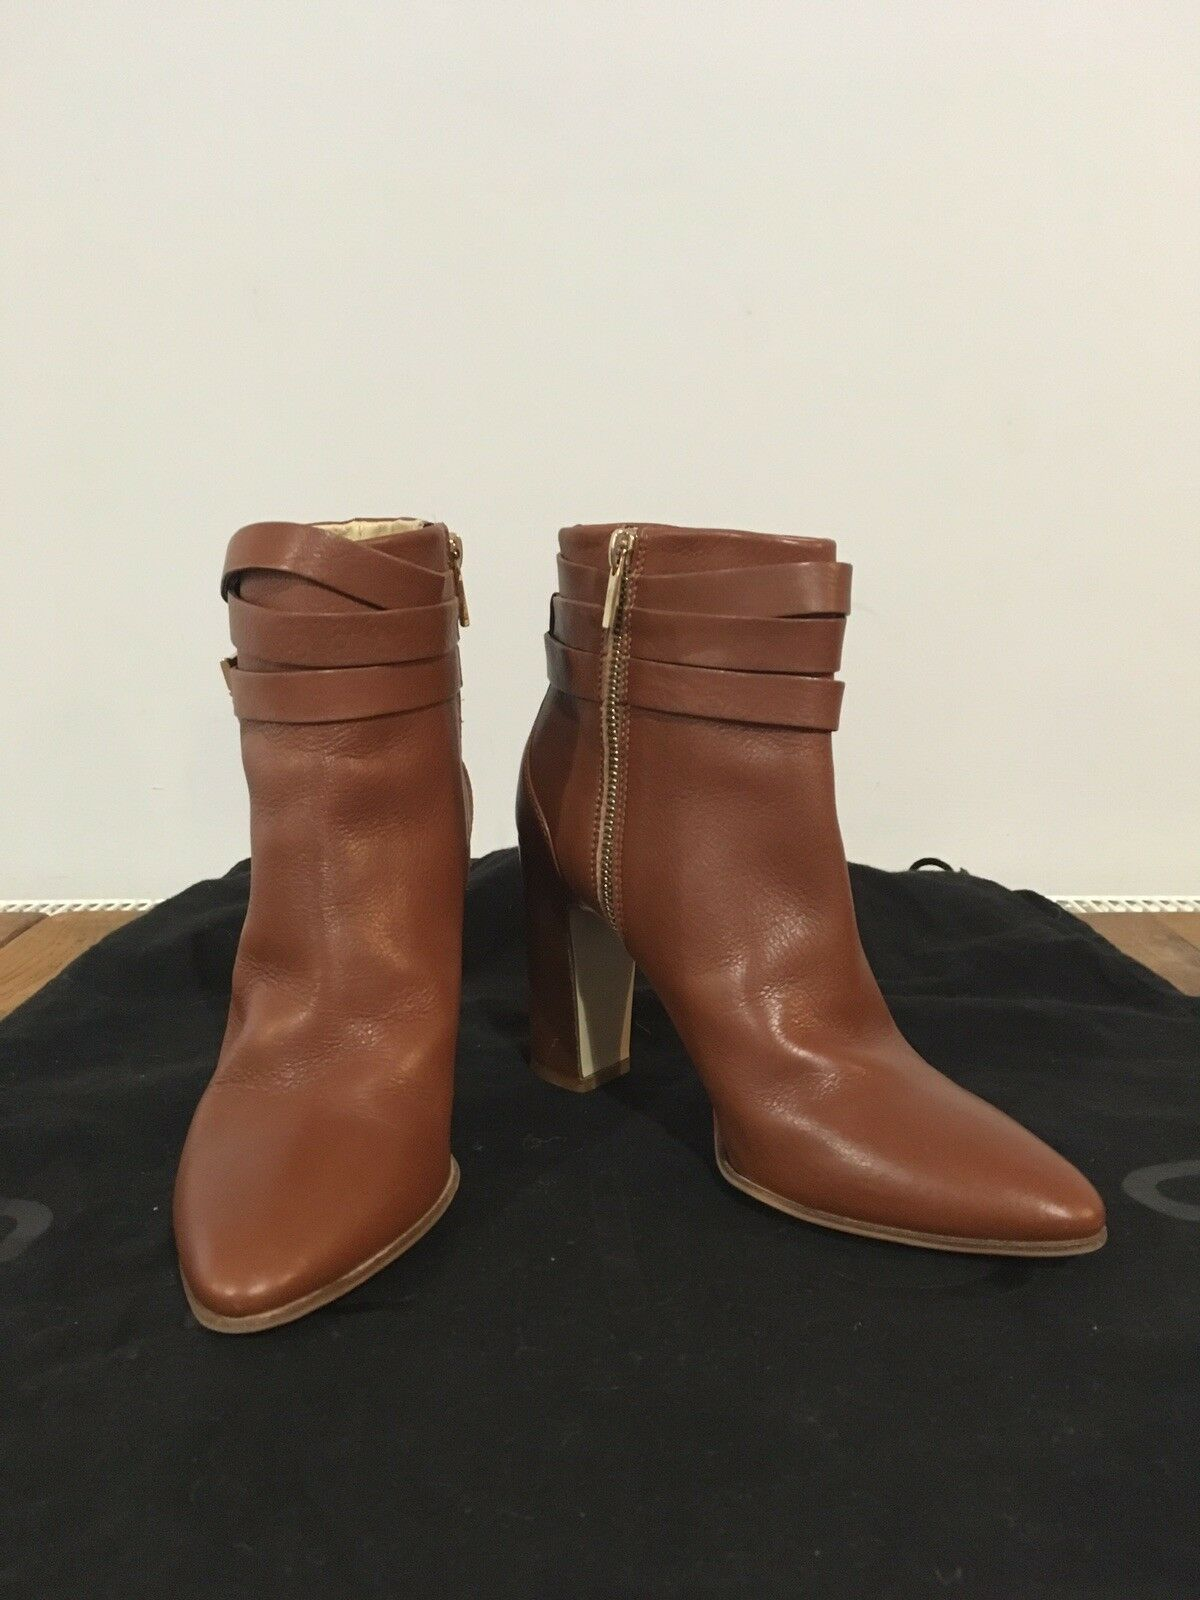 Hobbs London Tan Leather Ankle Boots Size 37 (4)